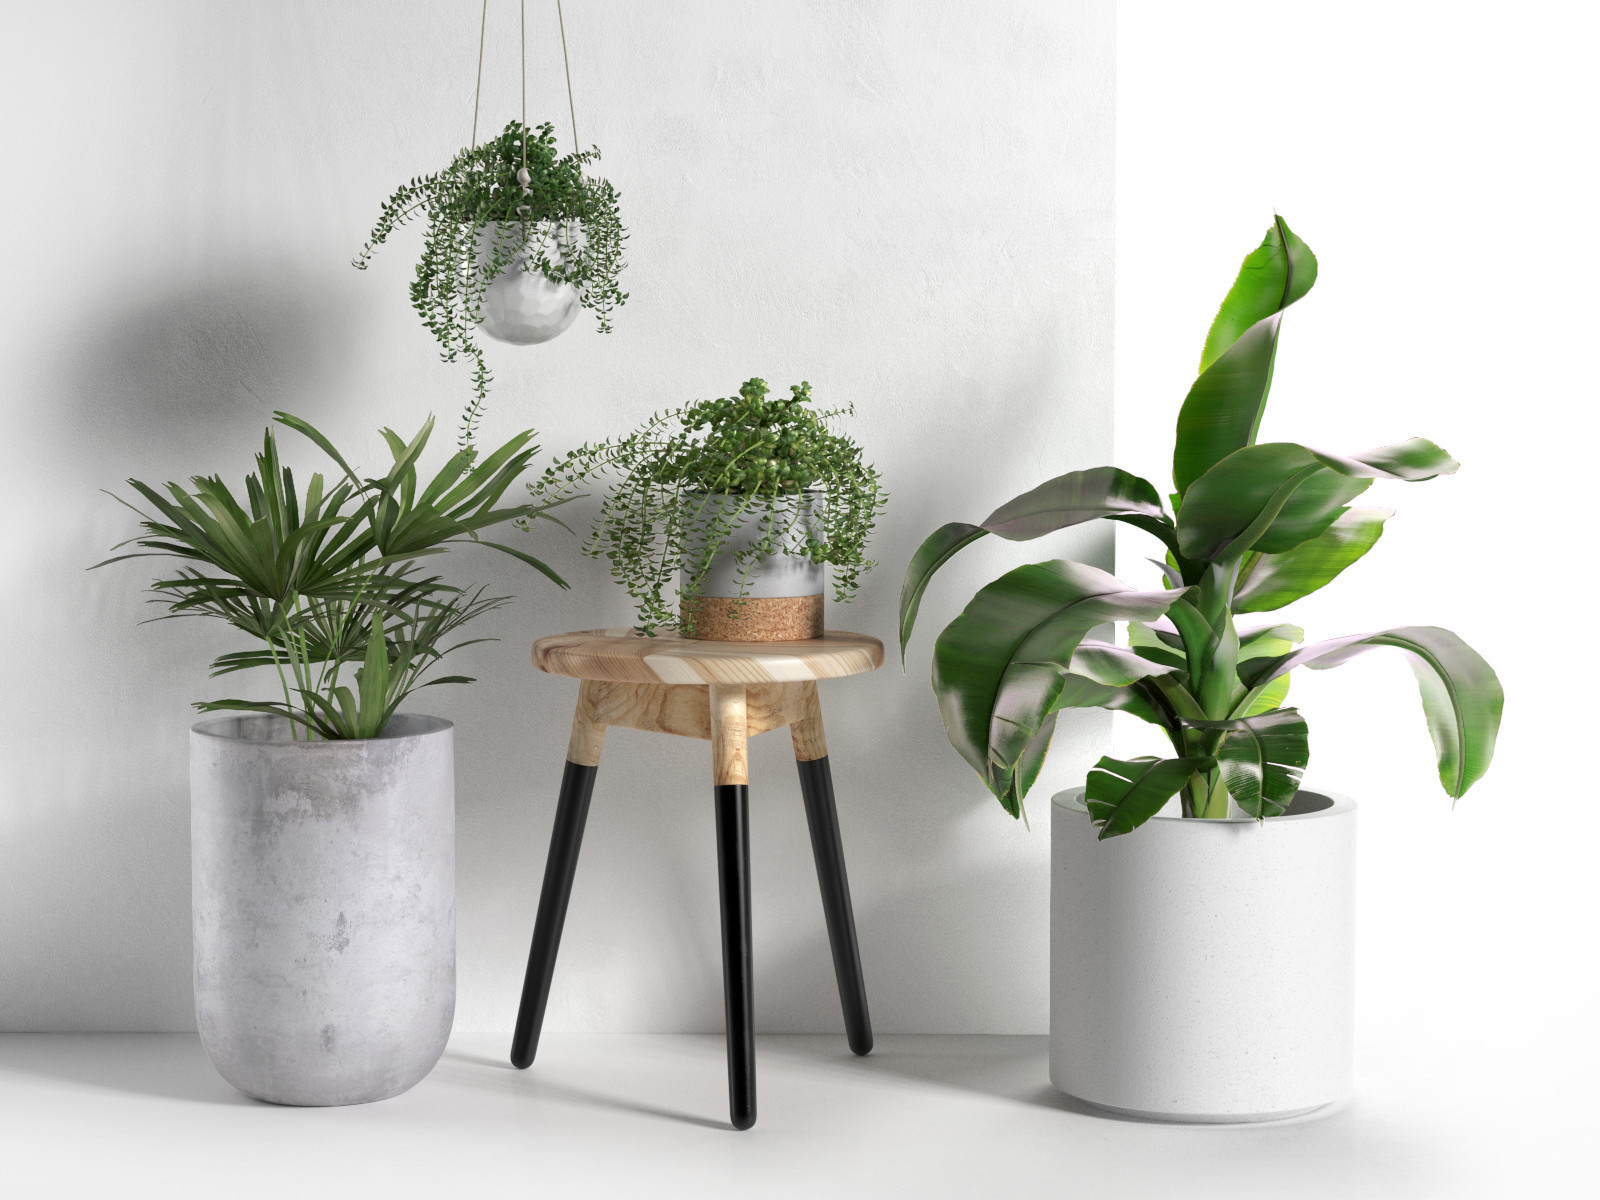 Big Pot Plants Stool And Pots With Plants